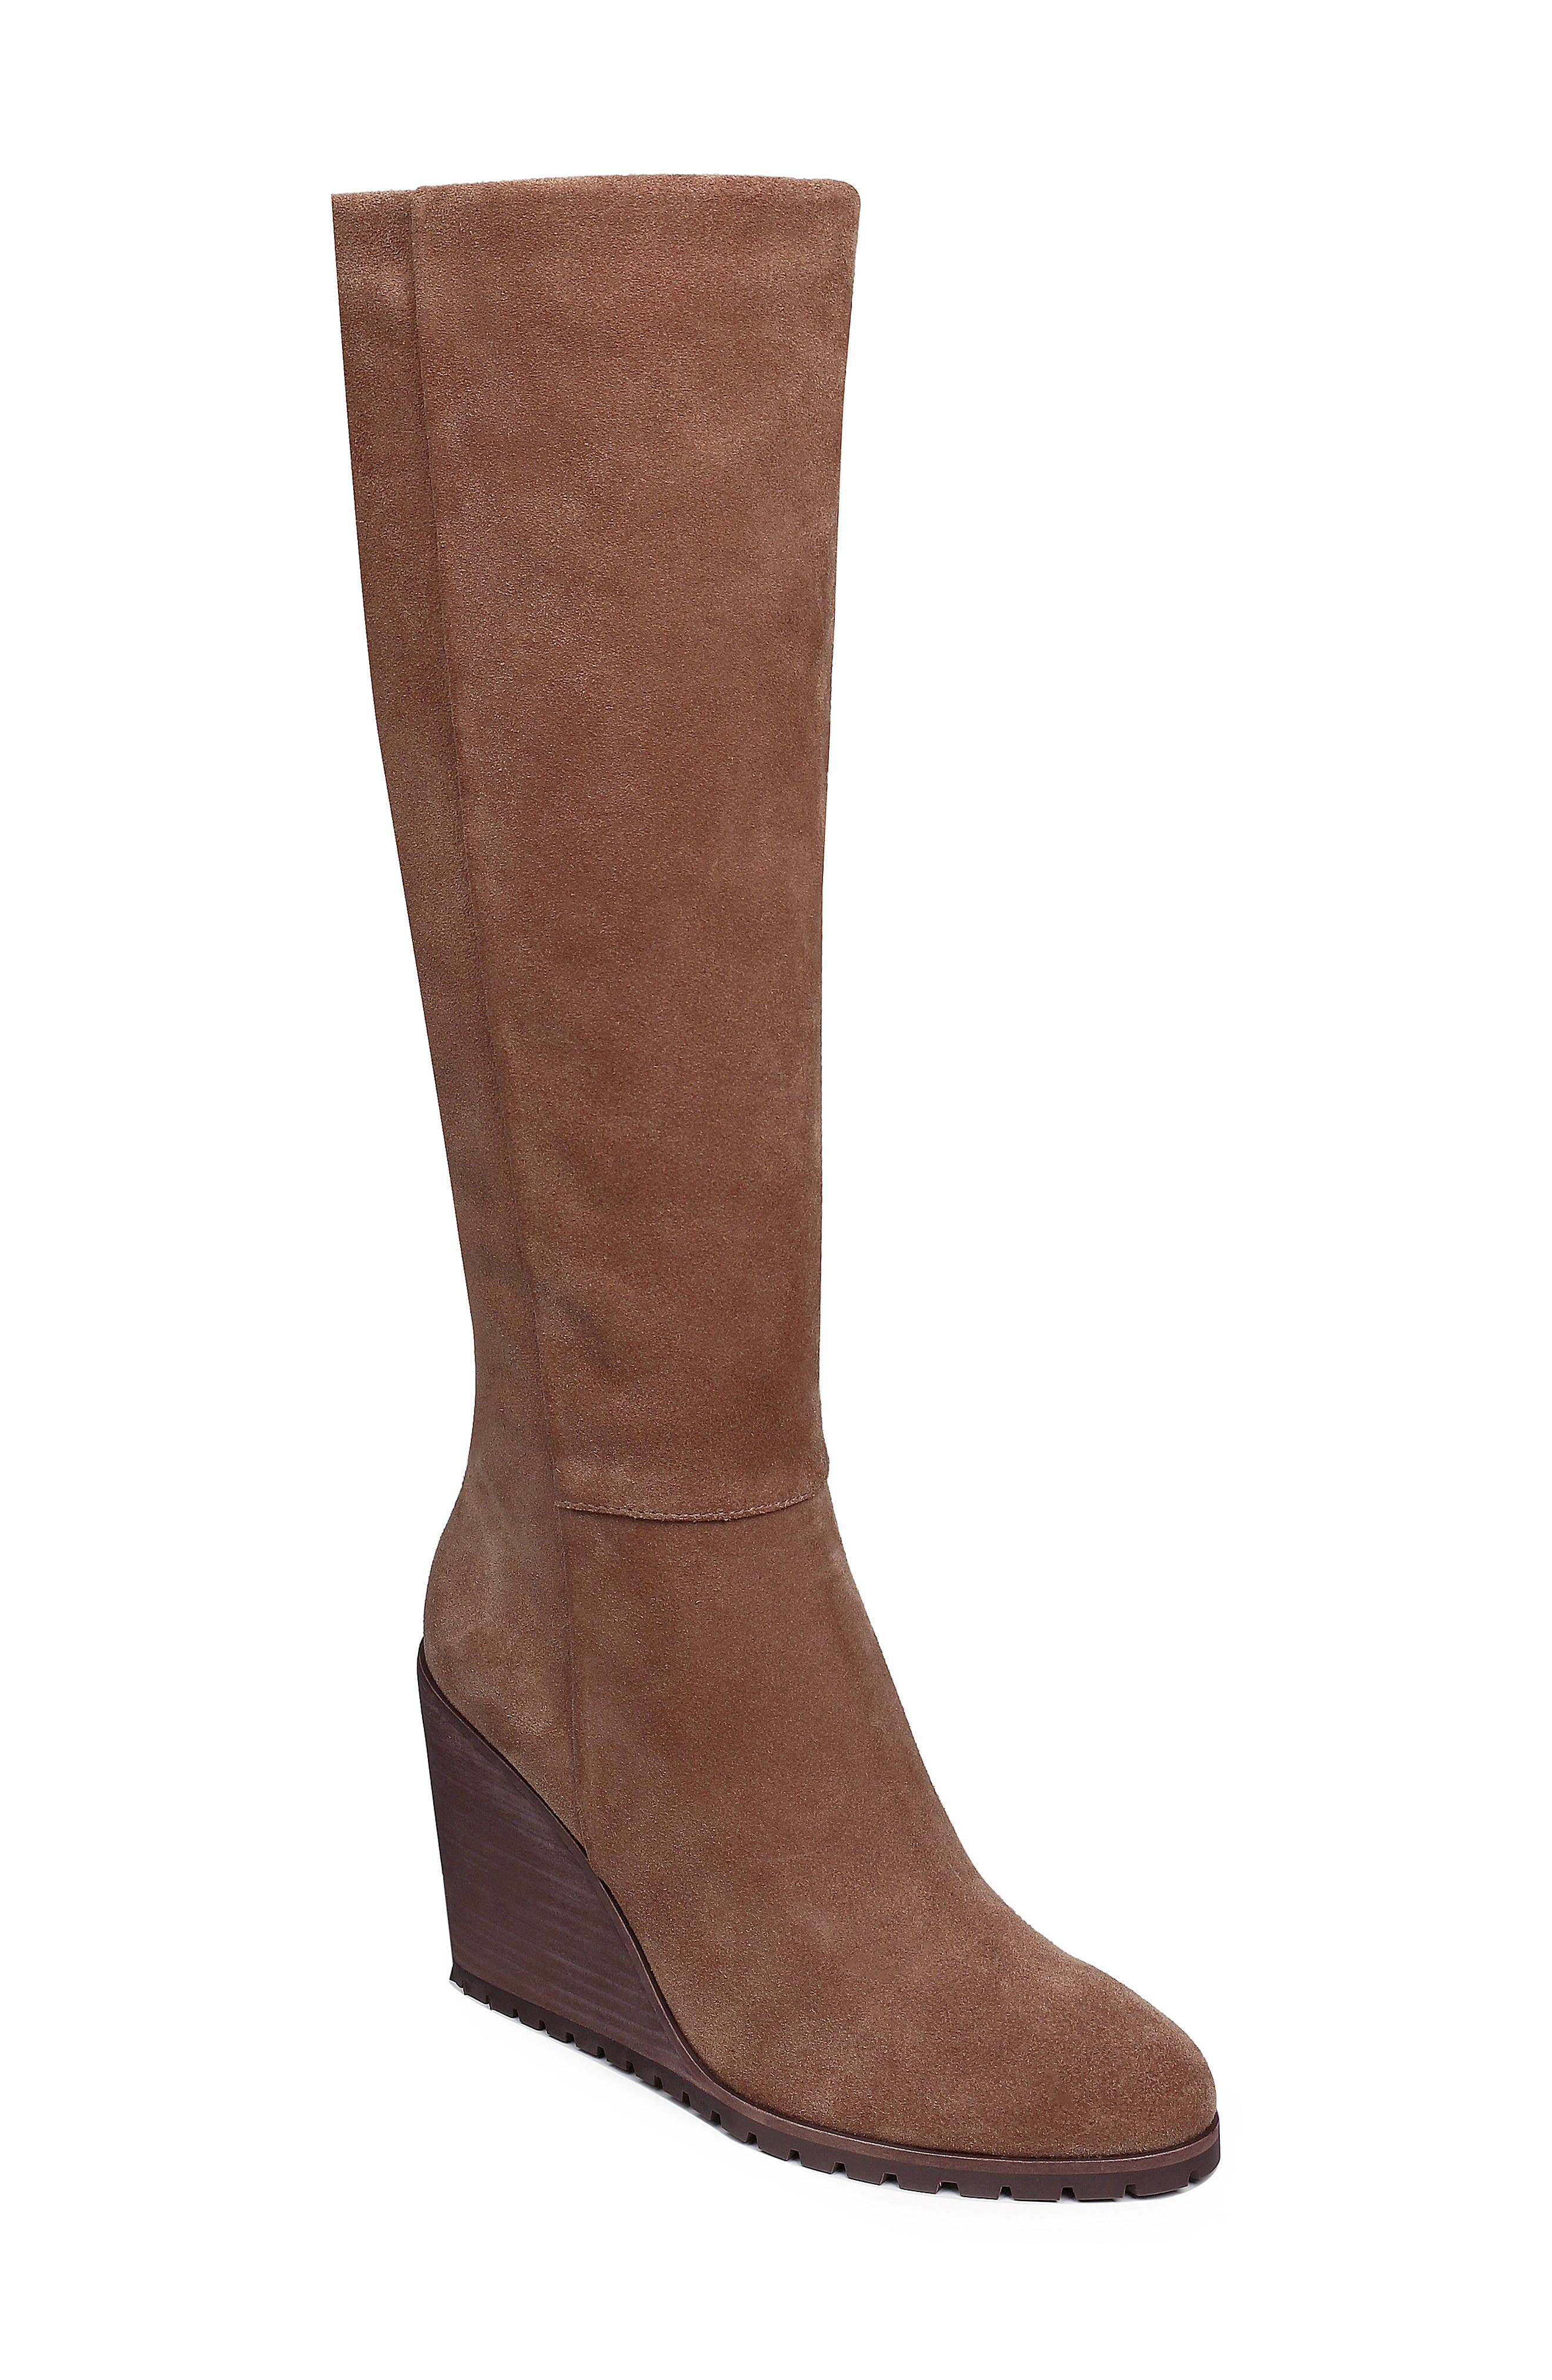 Cleveland Wedge Boot,                             Main thumbnail 1, color,                             LIGHT BROWN SUEDE